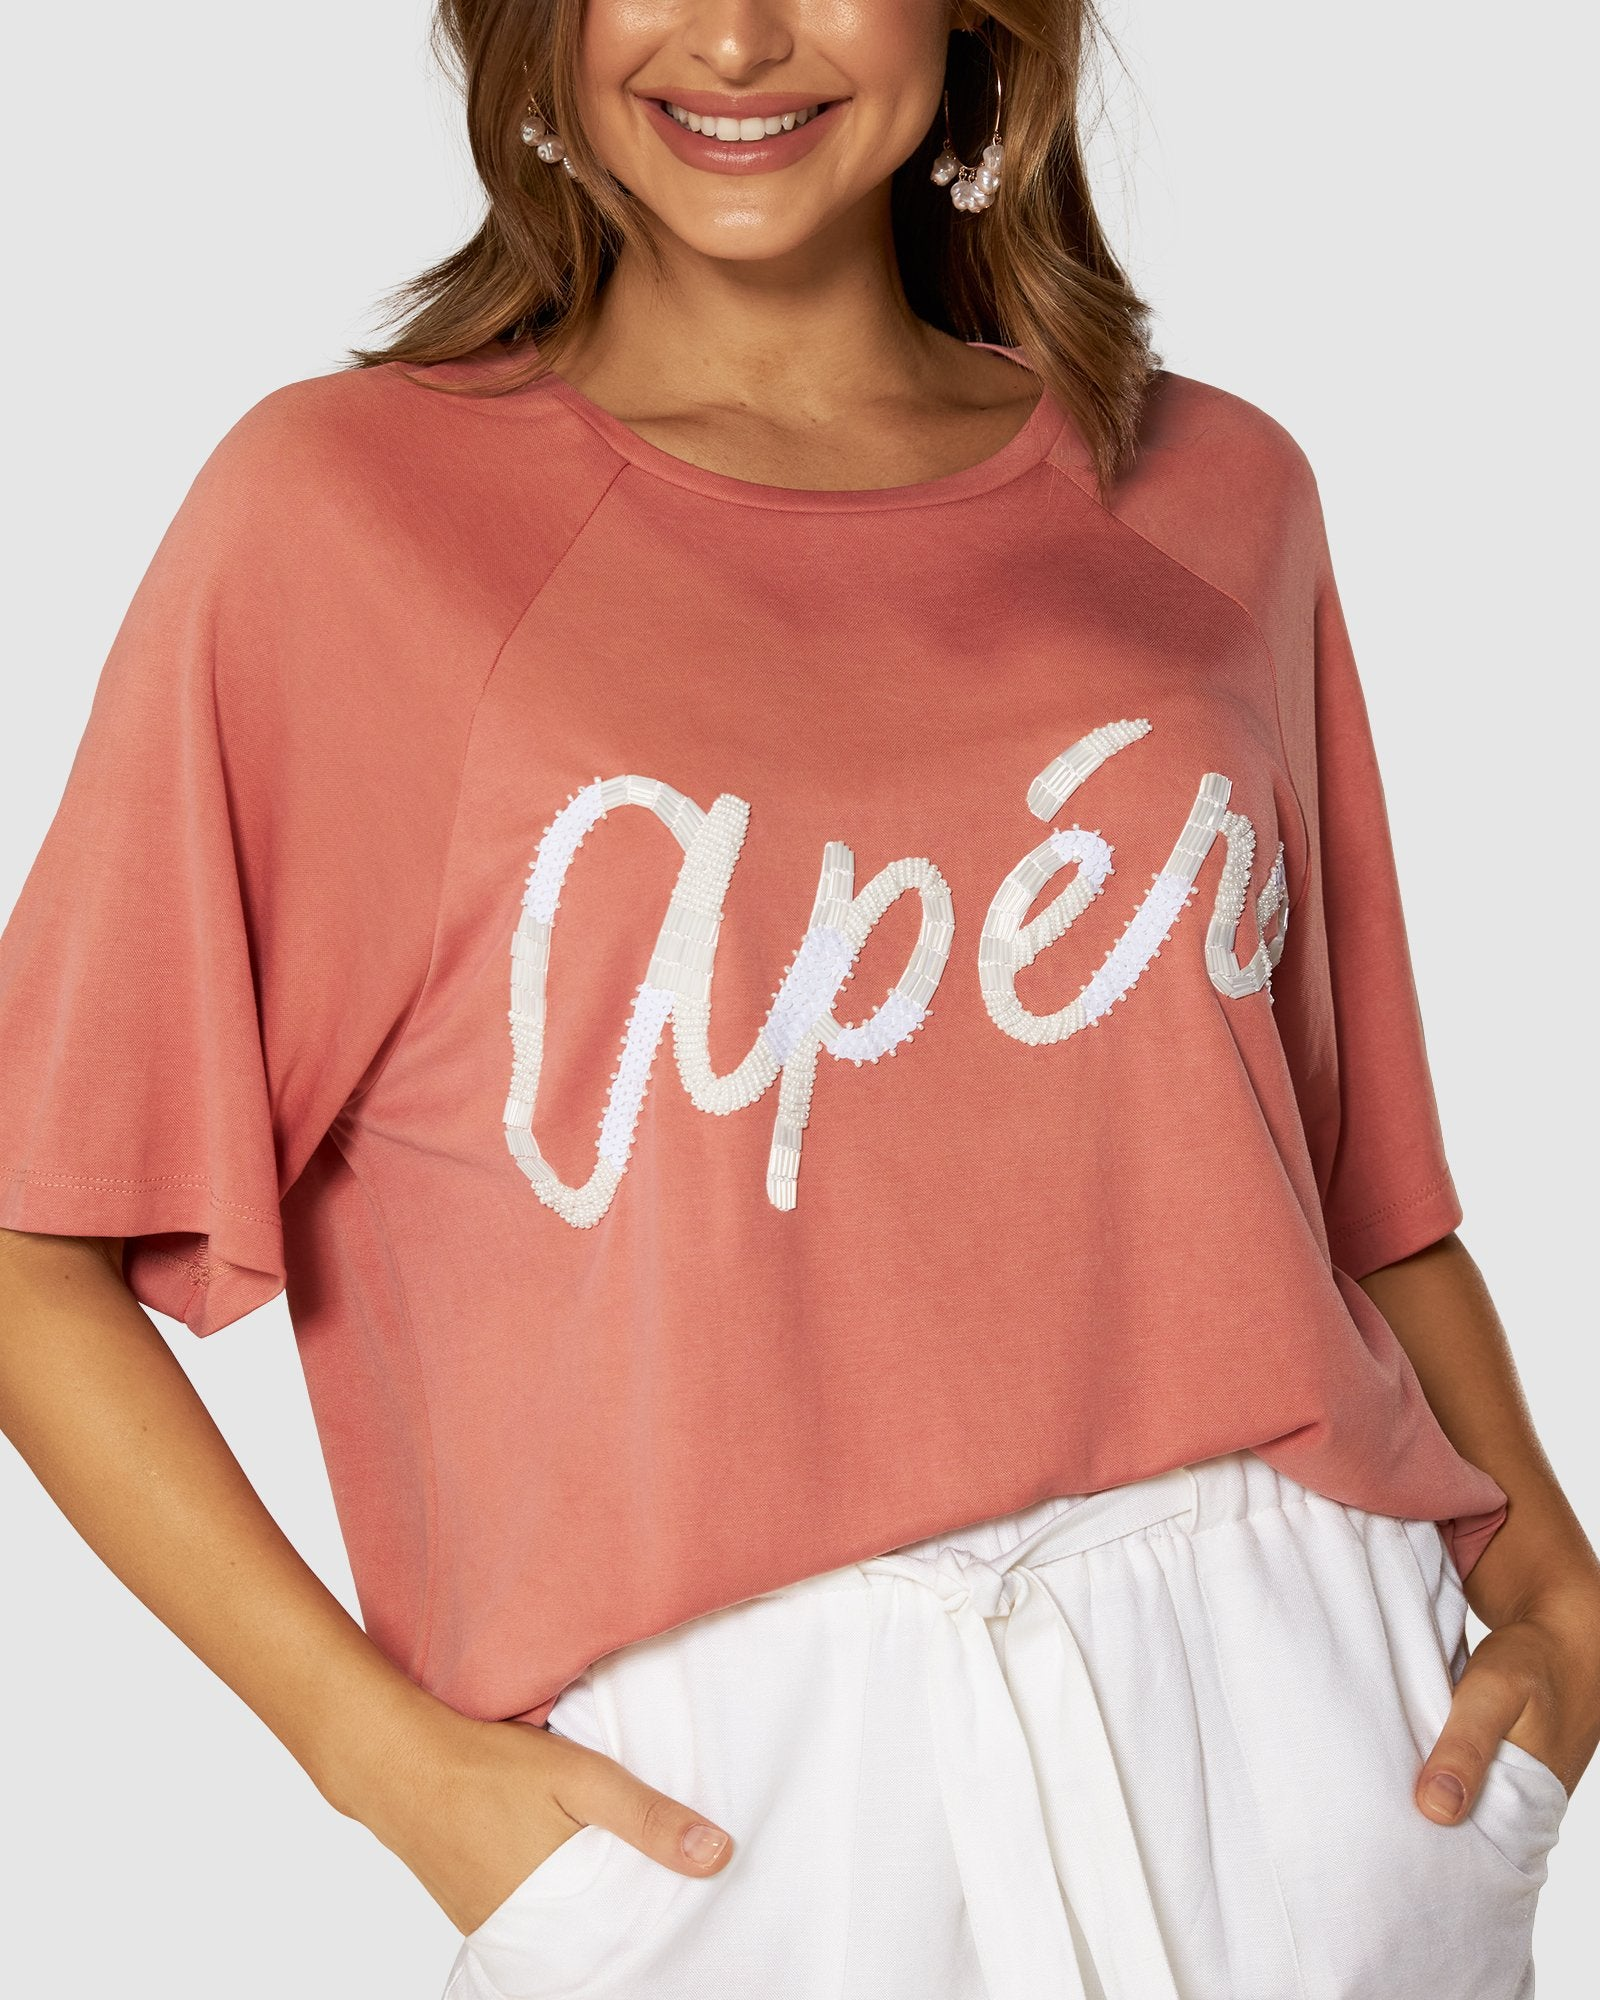 Apero Colada Beaded Oversized Tee in Peachy Pink/White